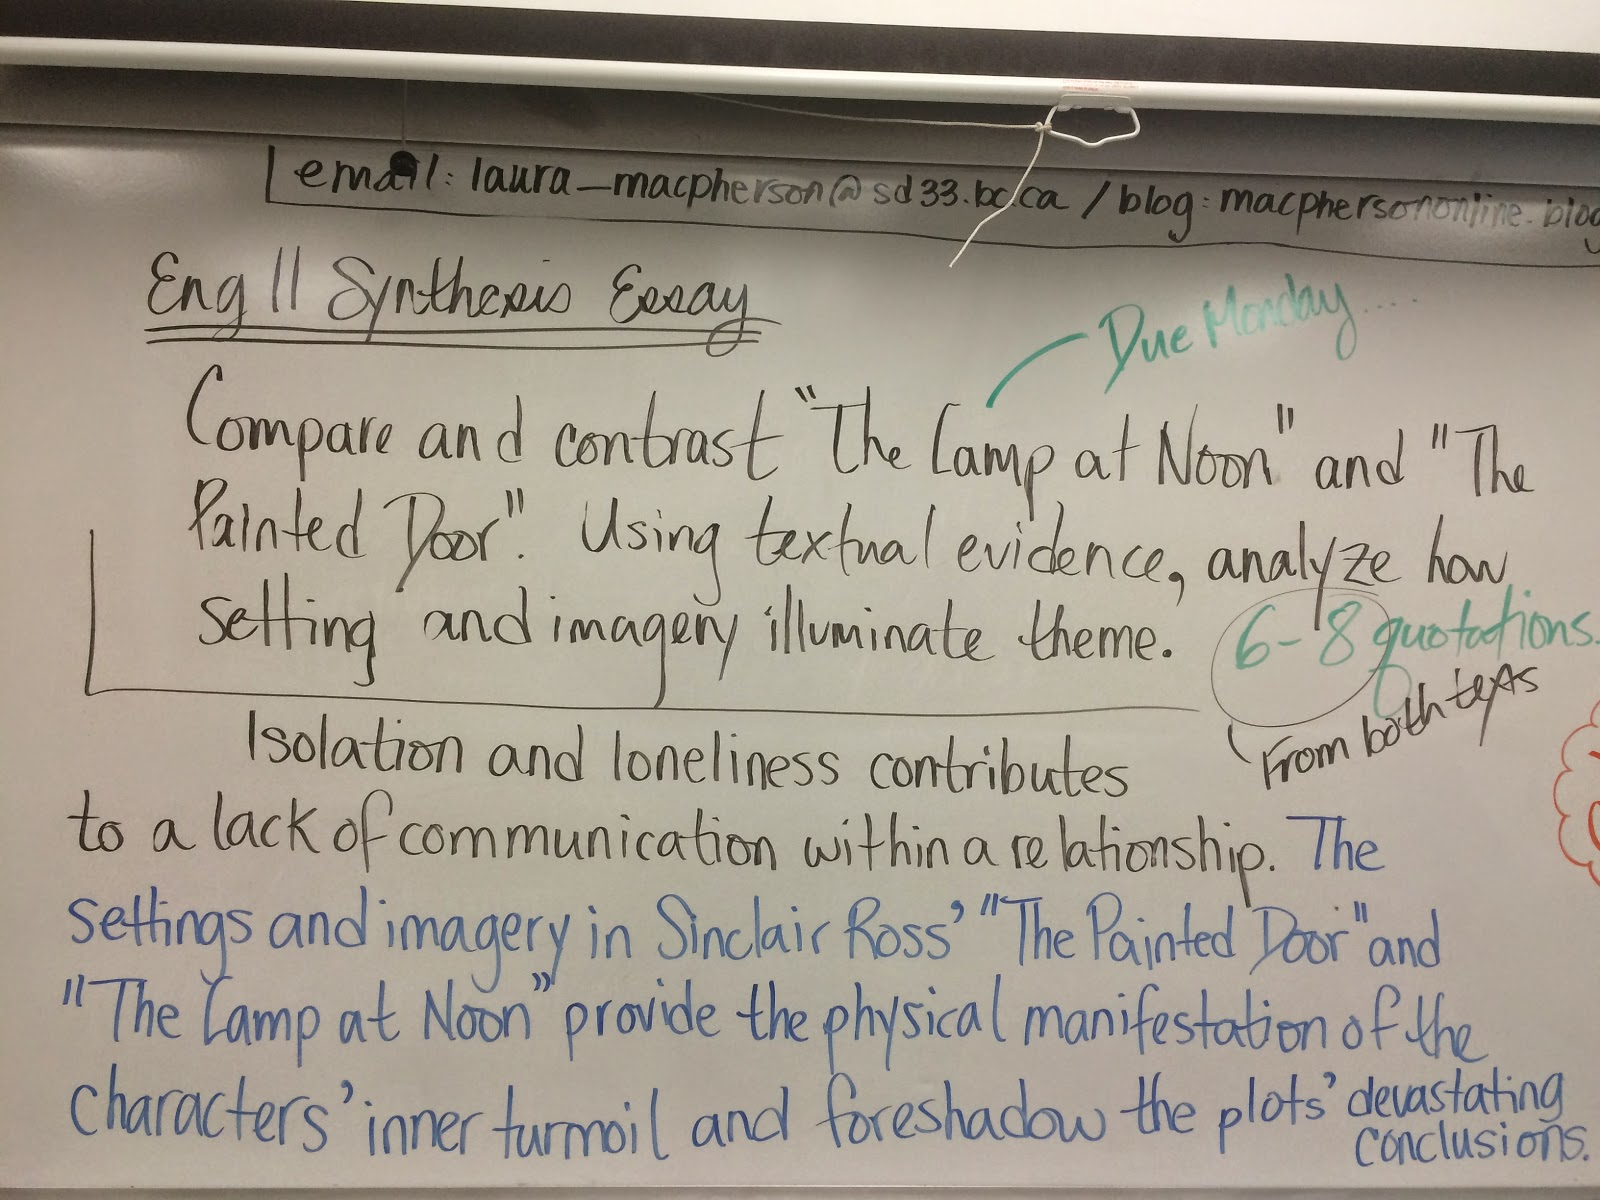 macpherson online 2015 begin writing synthesis essay due monday 2nd see yesterday s post for topic and criteria next week a separate peace novel study